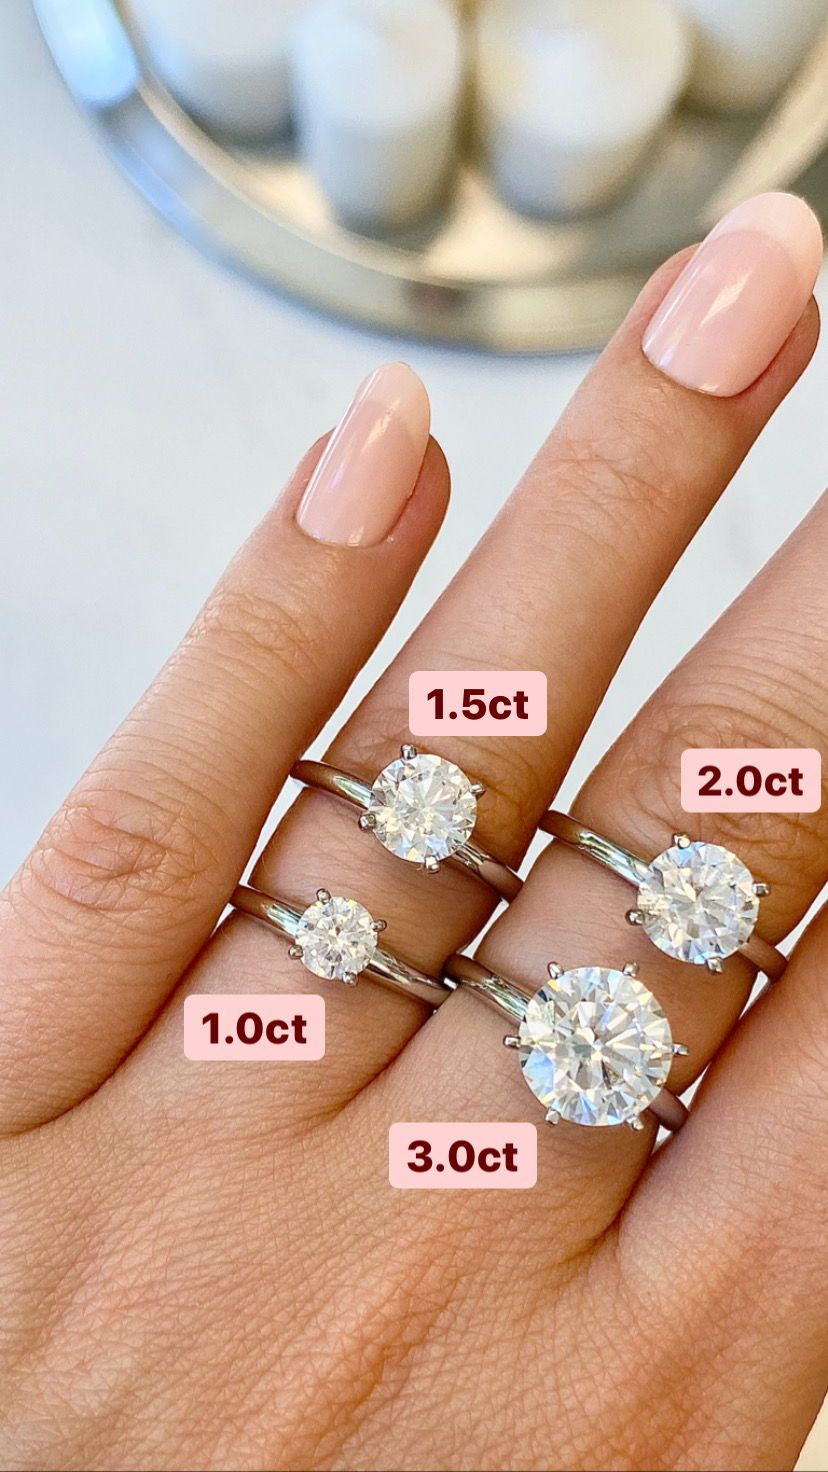 Miadonna Which Diamond Carat Size Should I Choose In 2020 Diamond Carat Size Conflict Free Engagement Ring Solitaire Engagement Ring Settings